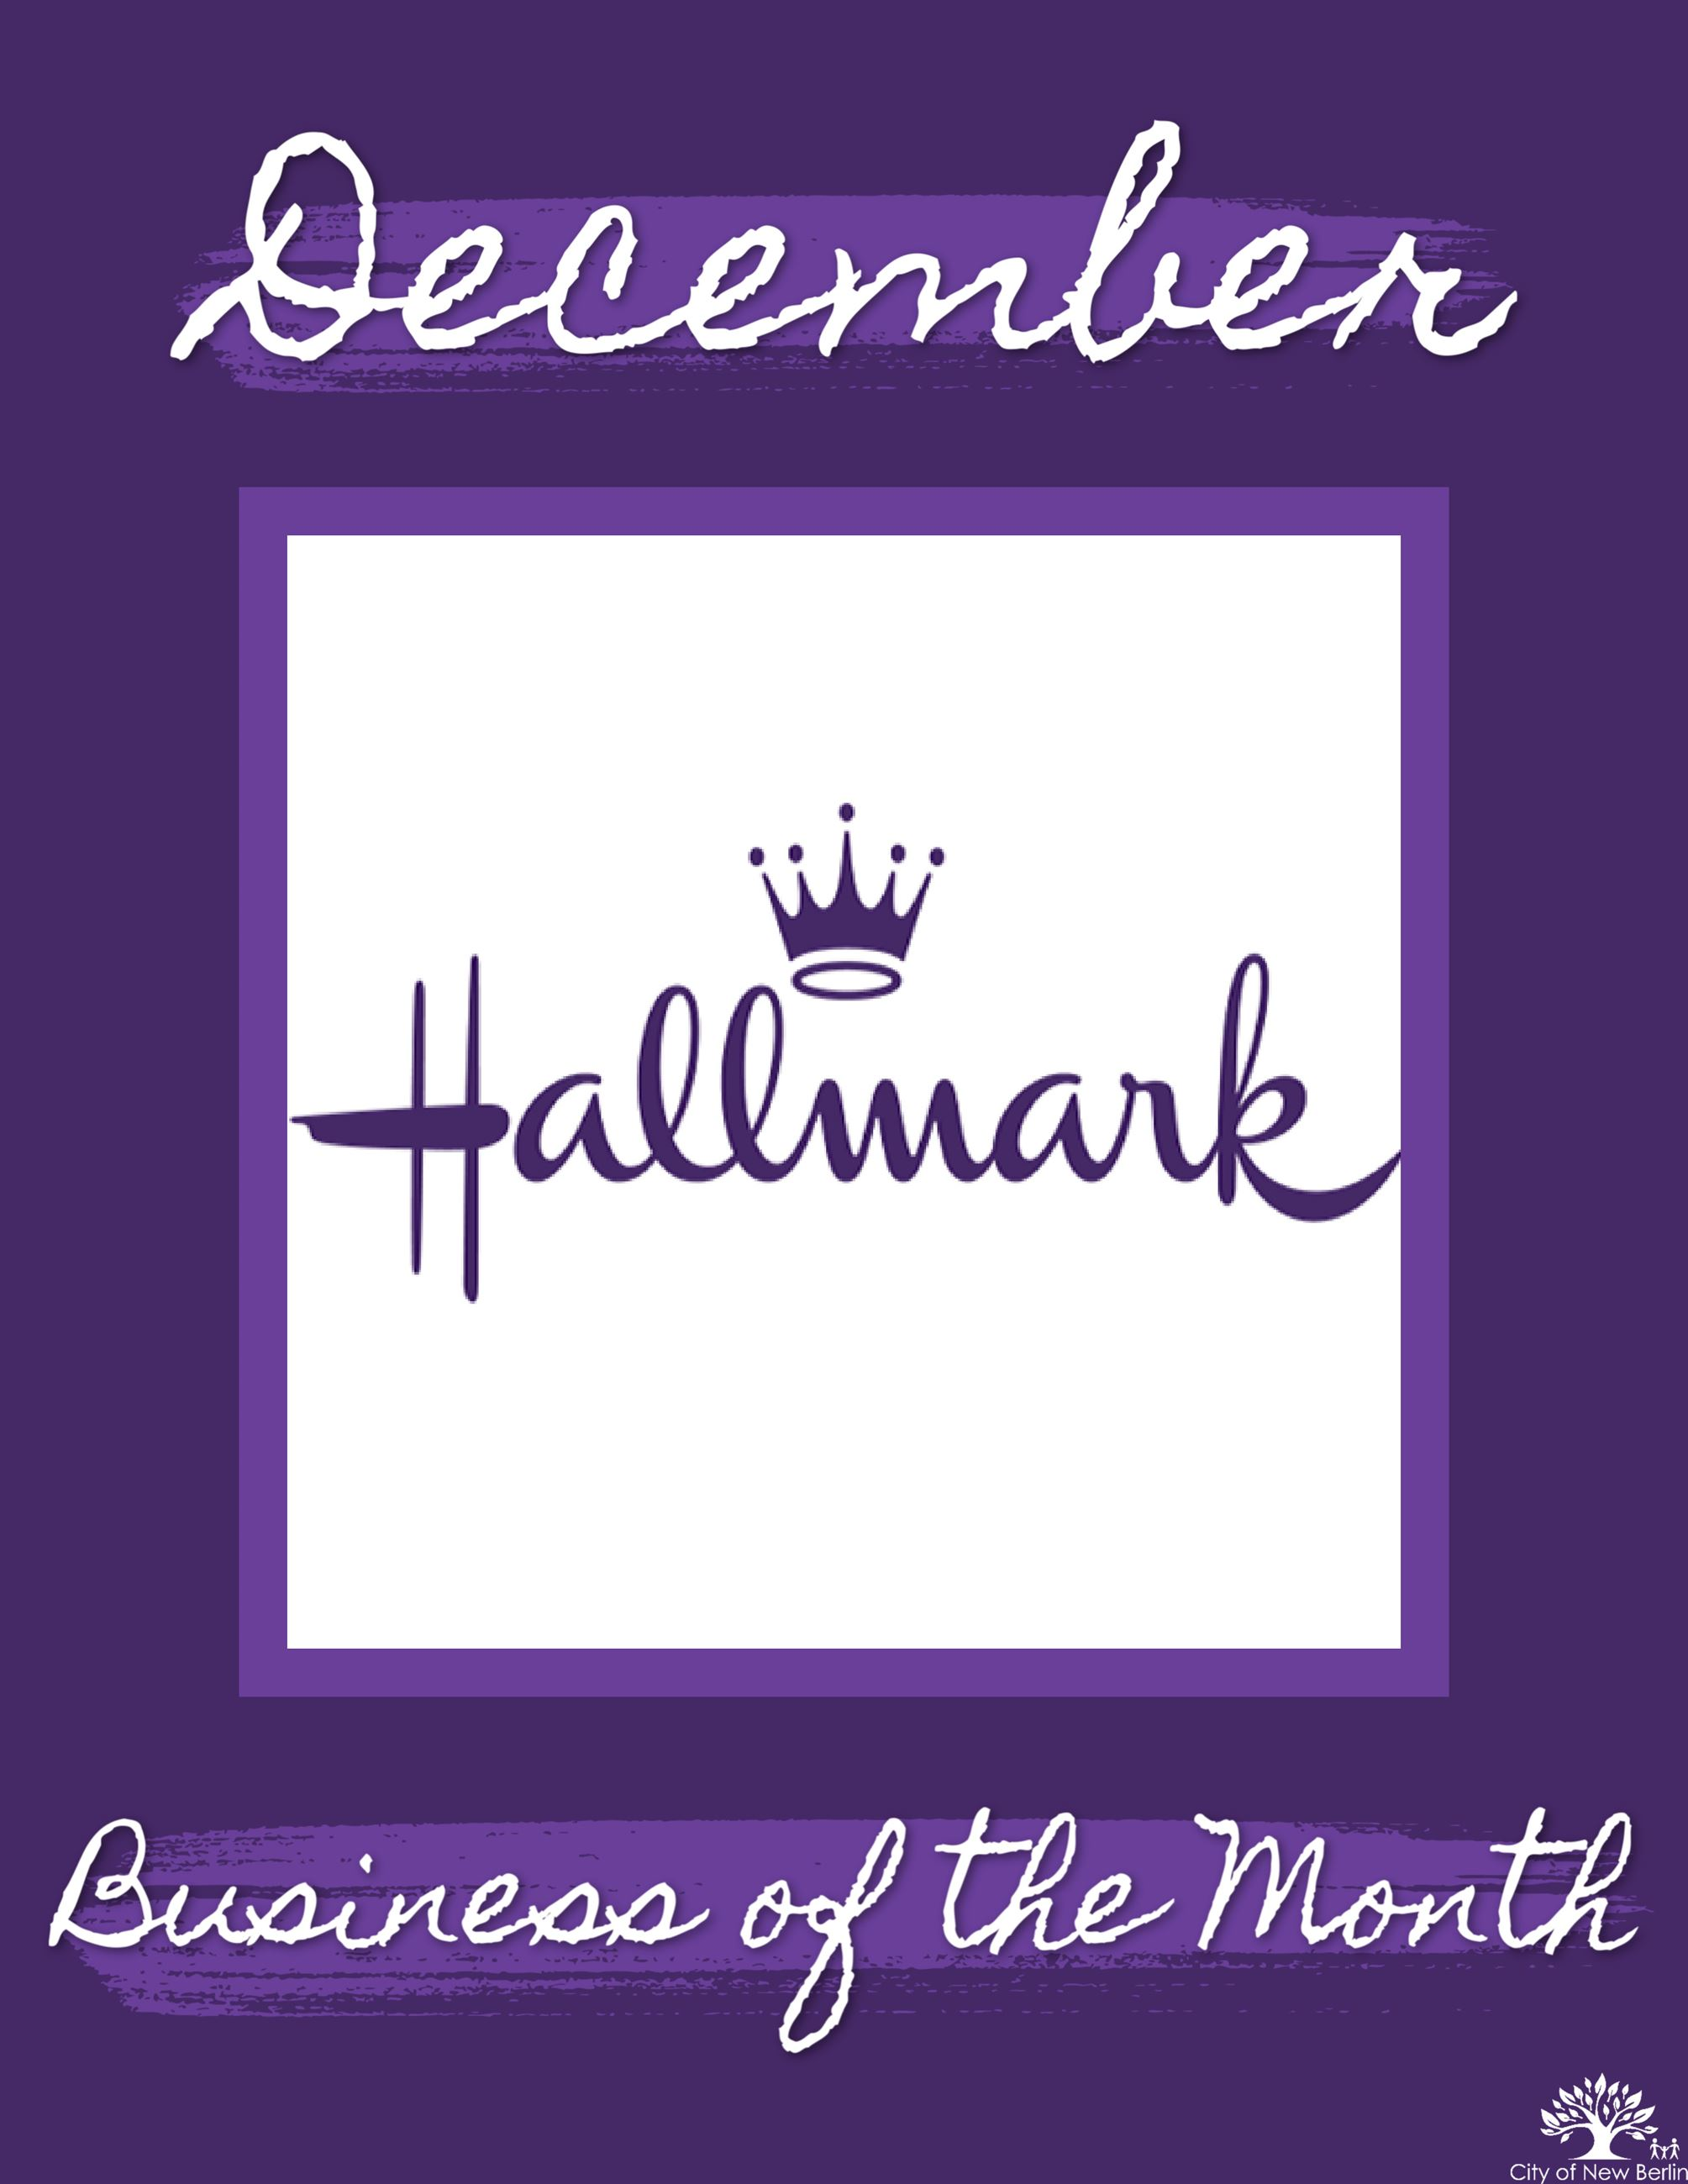 December Business of the Month